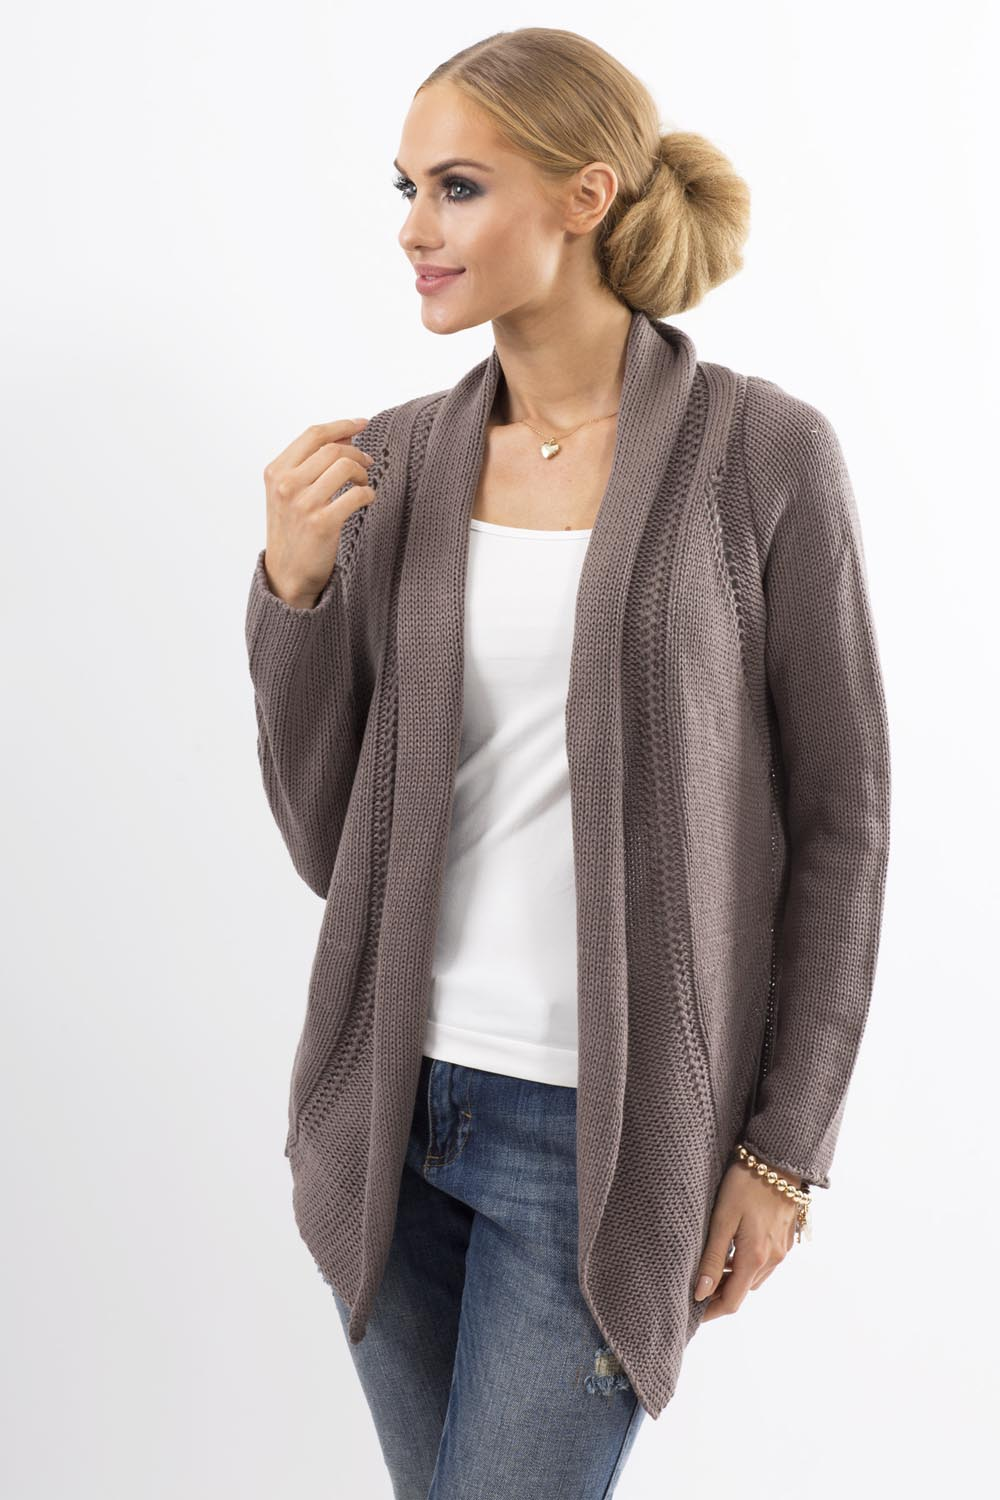 Knitting Pattern Sweater With Collar : Cappuccino Shawl Collar Ladies Cardigan with Eyelet Knit Pattern